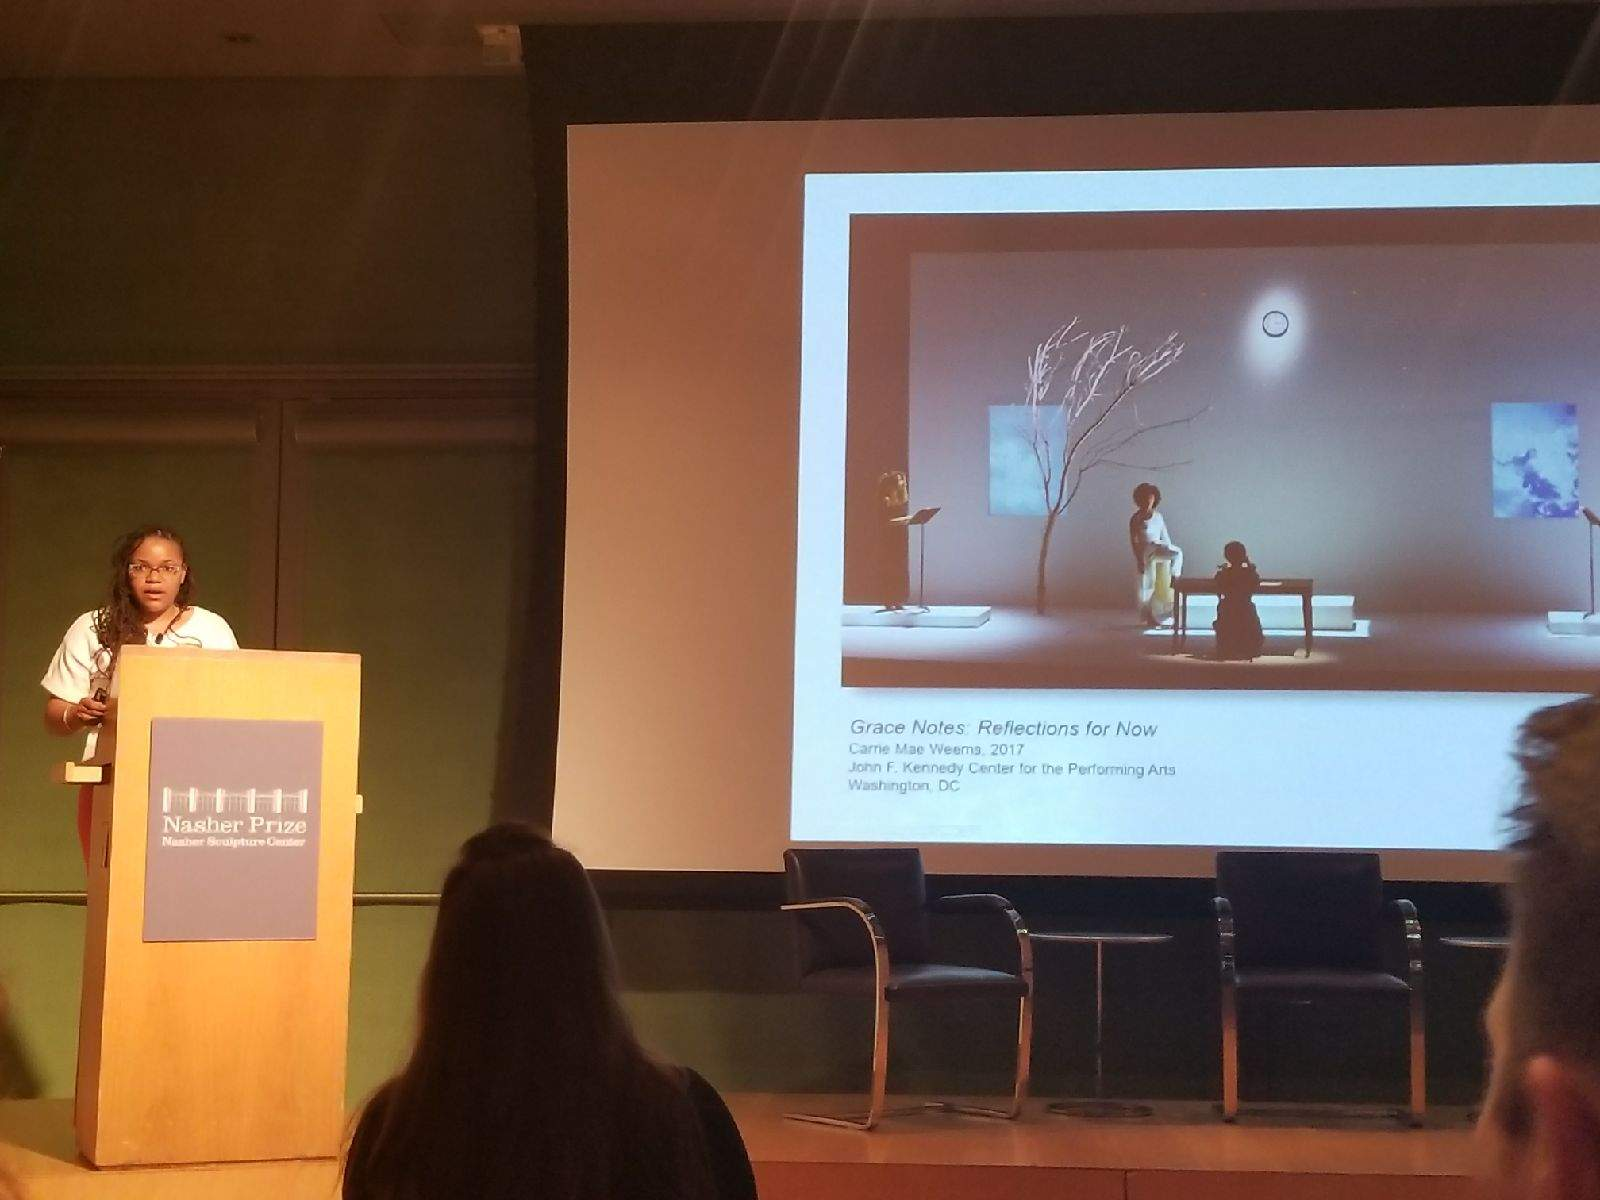 Zoma Wallace presenting at the Nasher Prize Graduate Symposium, Dallas, TX. Photo Courtesy of Zoma Wallace.